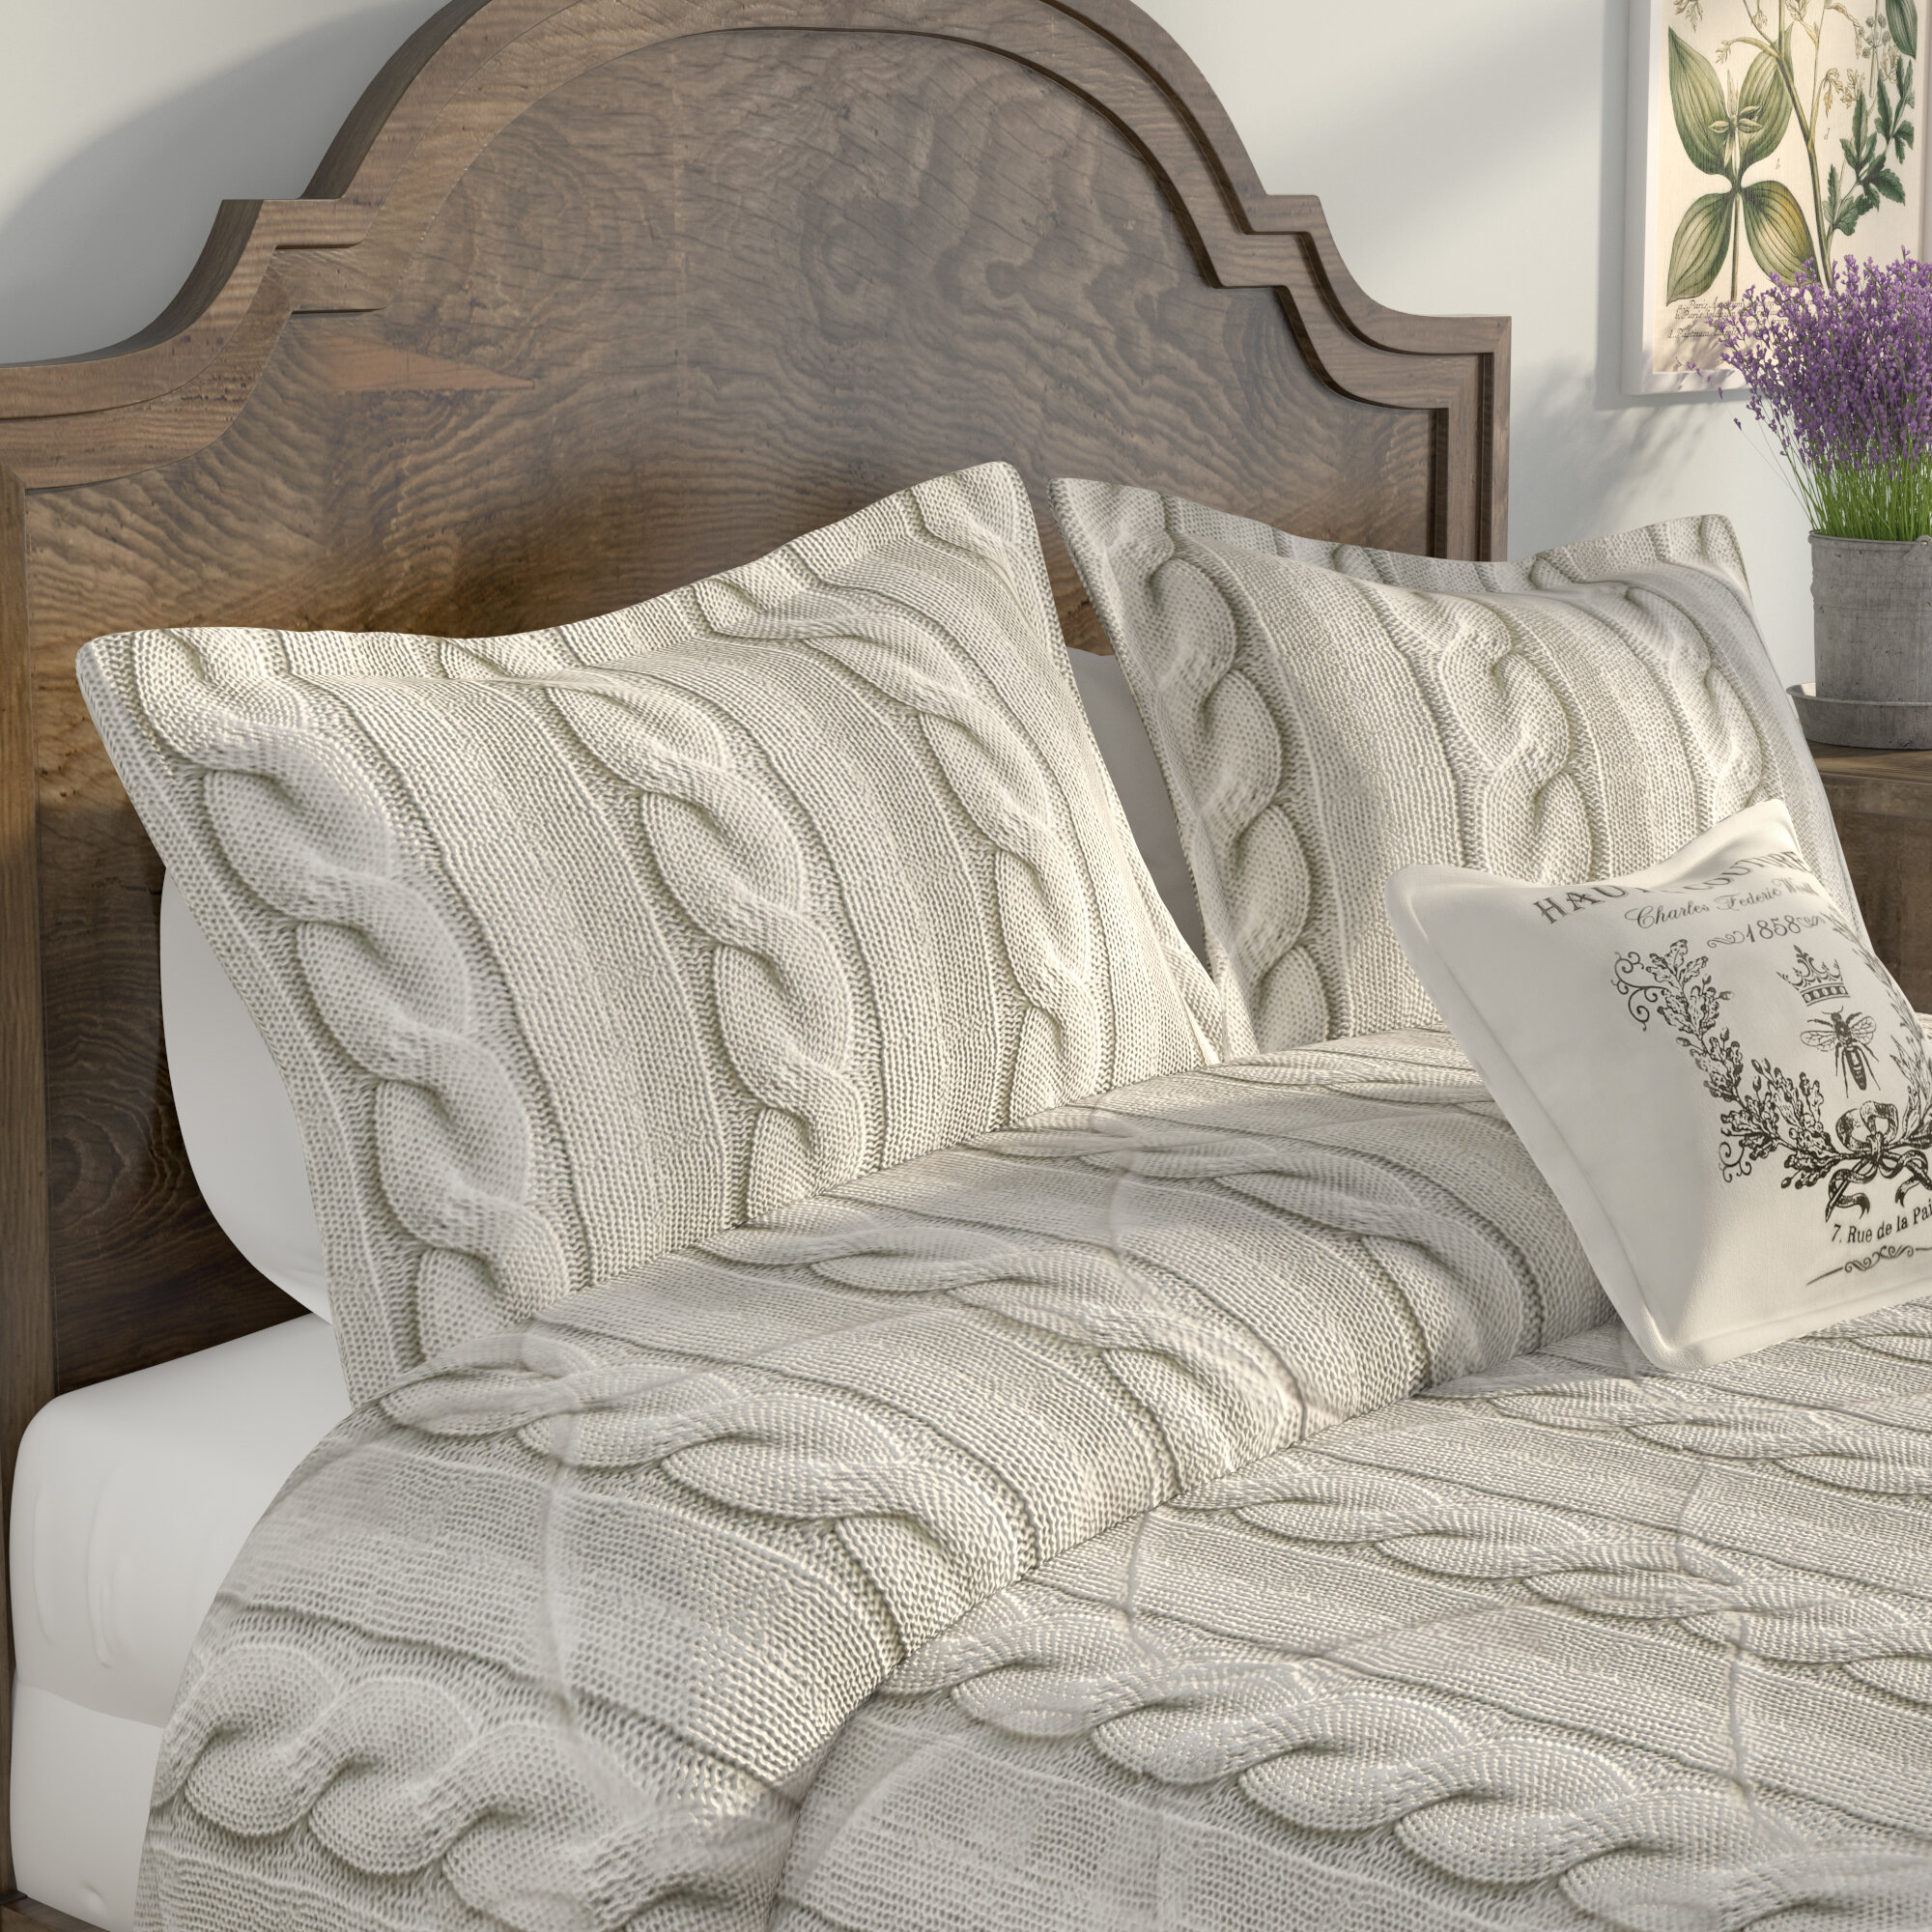 overstock bath linen comforter free shipping set today bedding product croscill caterina